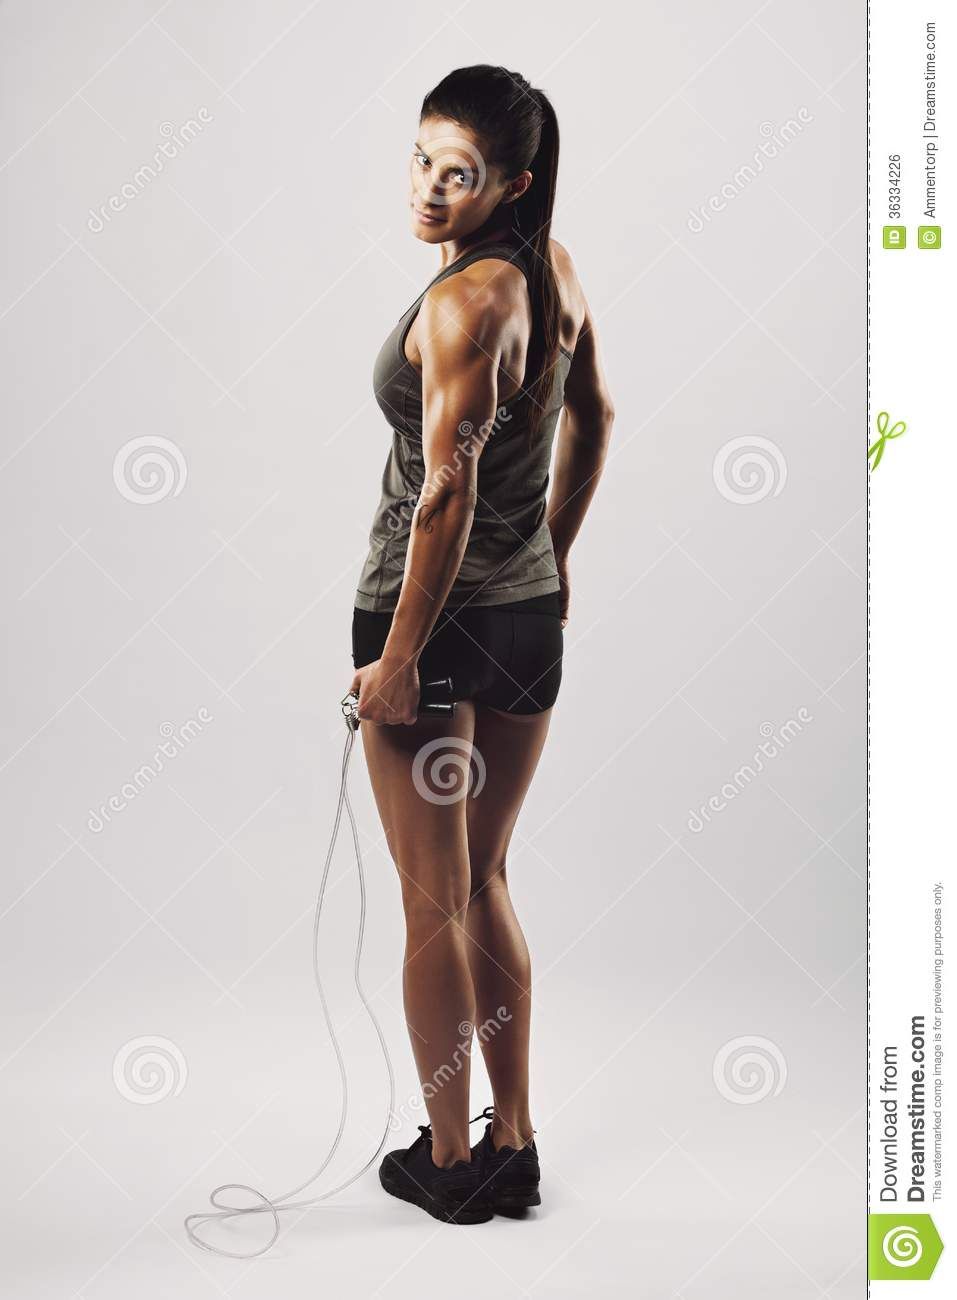 Fitness Woman Posing With Skipping Rope Royalty Free Stock Image - Image: 36334226